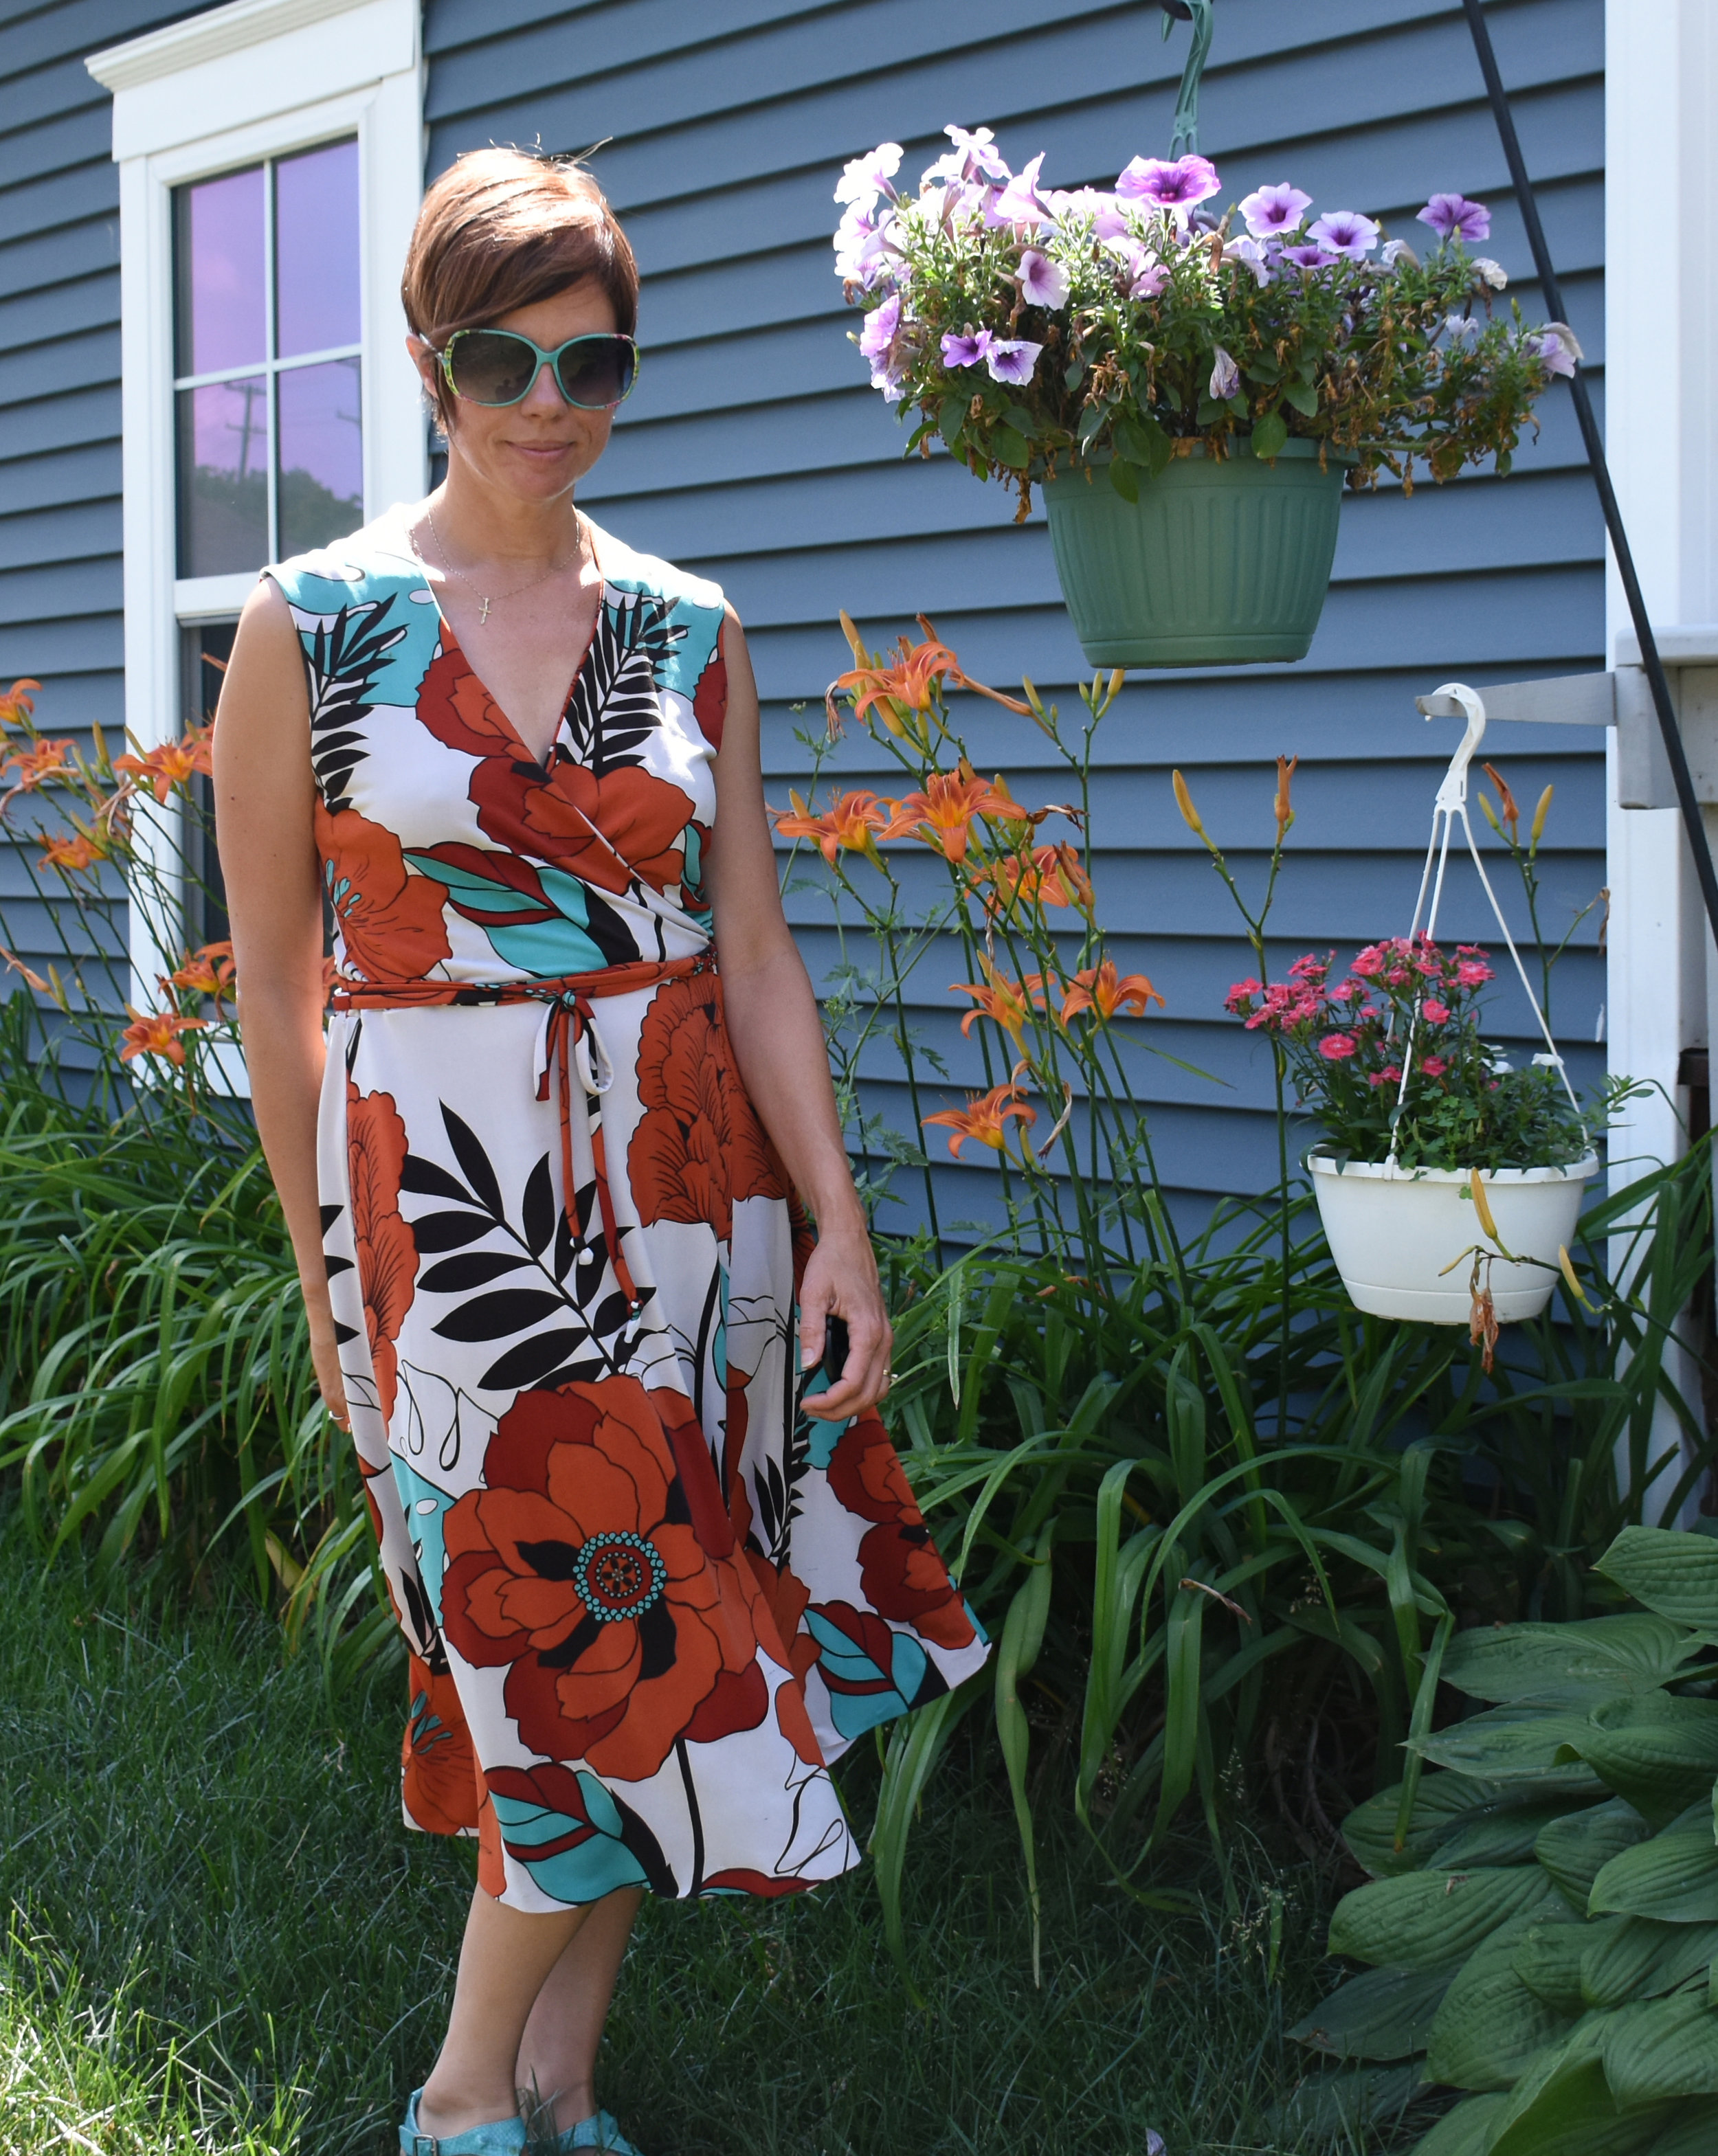 My side yard, against my garage, with flowers. I feel least self-conscious here. Christine Jonson Wrap dress with sleeveless, self-lined bodice. I'm not wearing enough lipstick here.